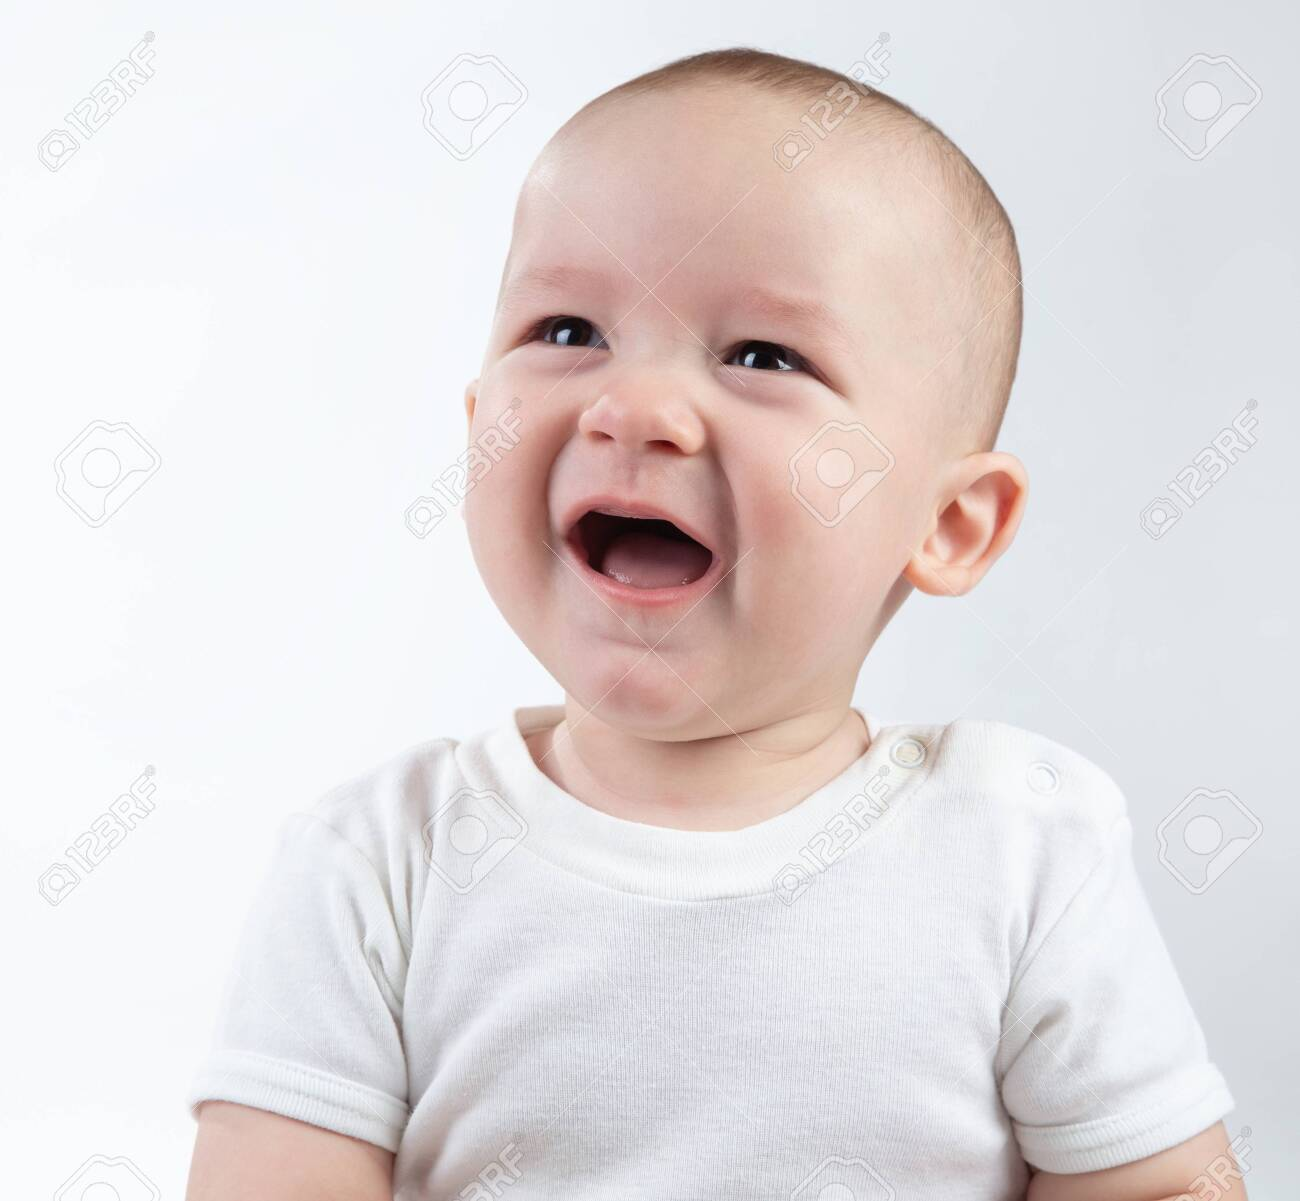 Portrait of unhappy nine-month-old baby on a white background - 152476856